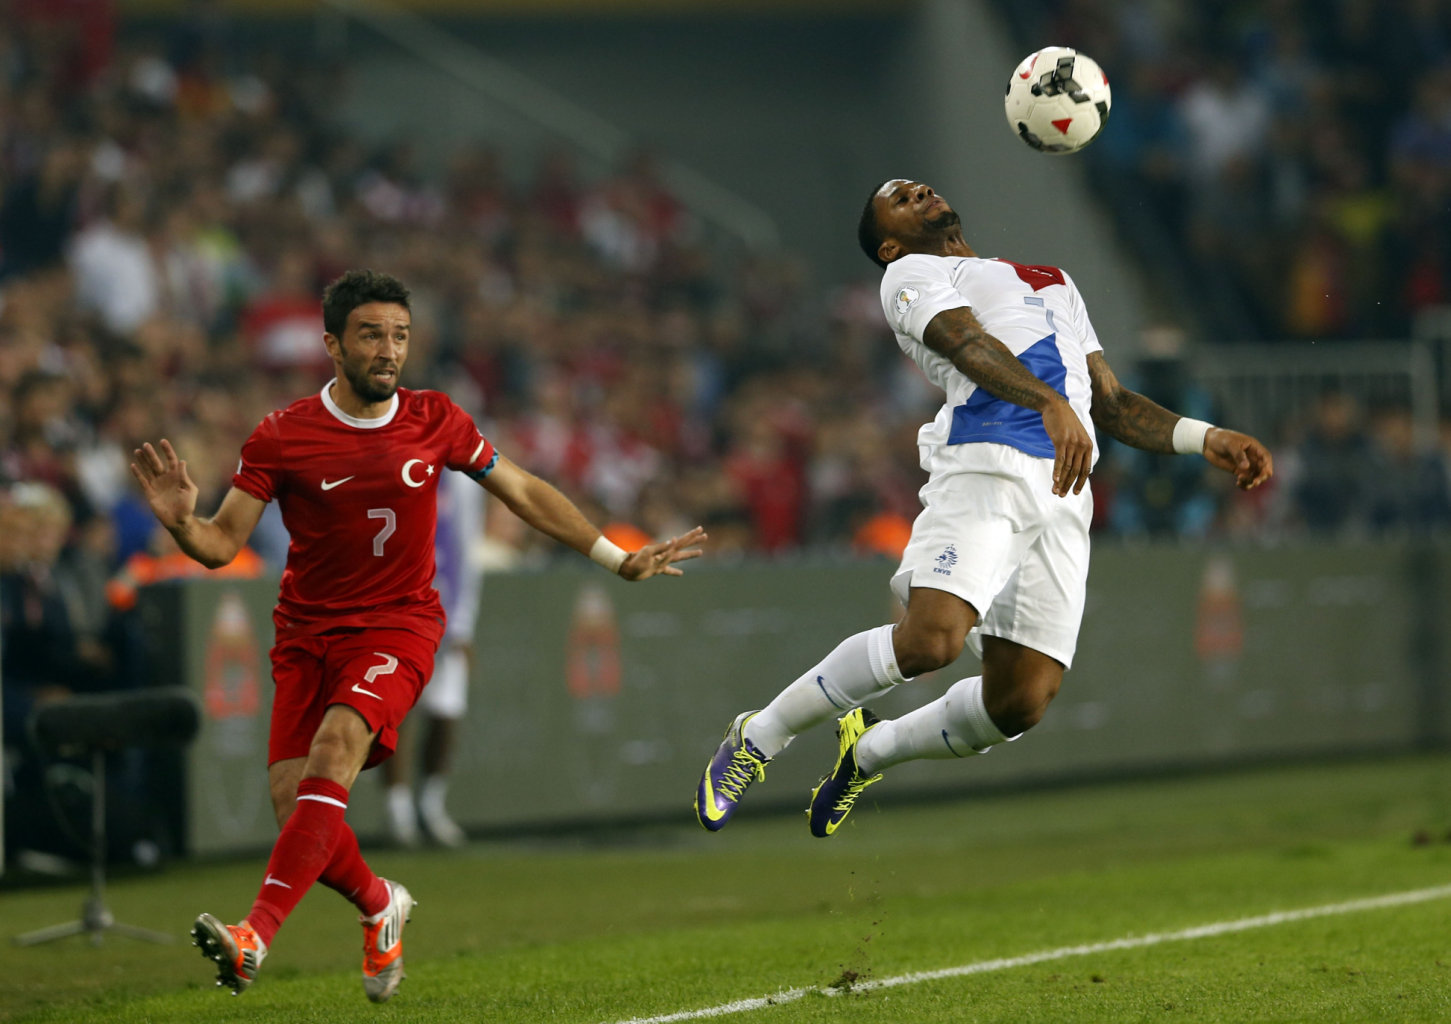 Netherlands' Lens controls ball in front of Turkey's Gonul during 2014 World Cup qualifying soccer match in Istanbul